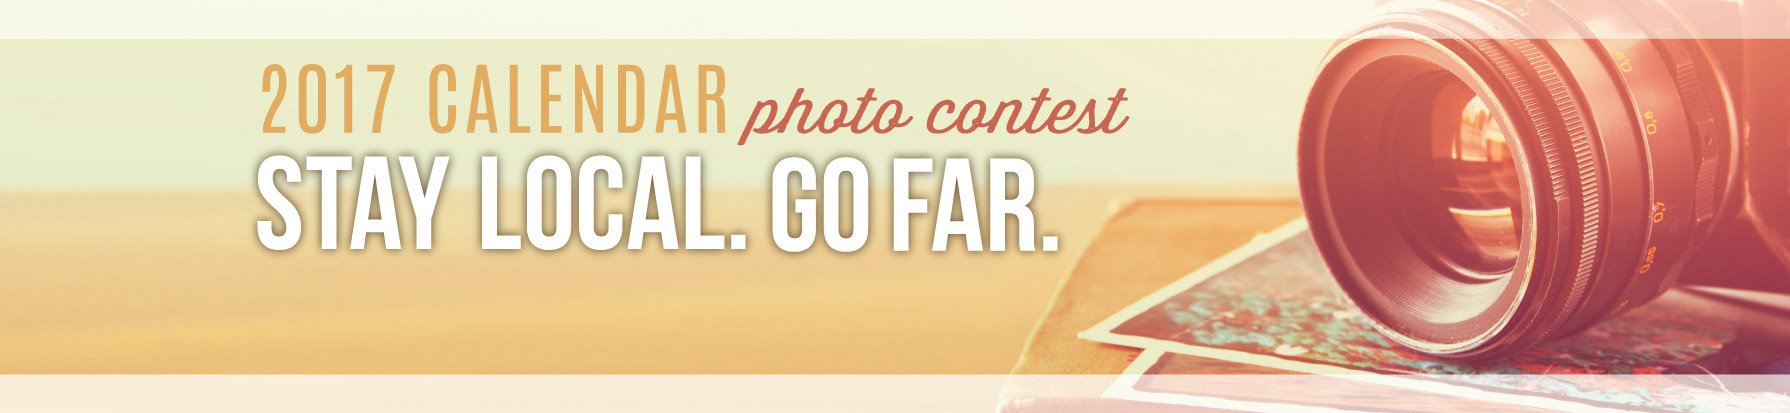 UB_HPBannerImage-PhotoContest2017-2